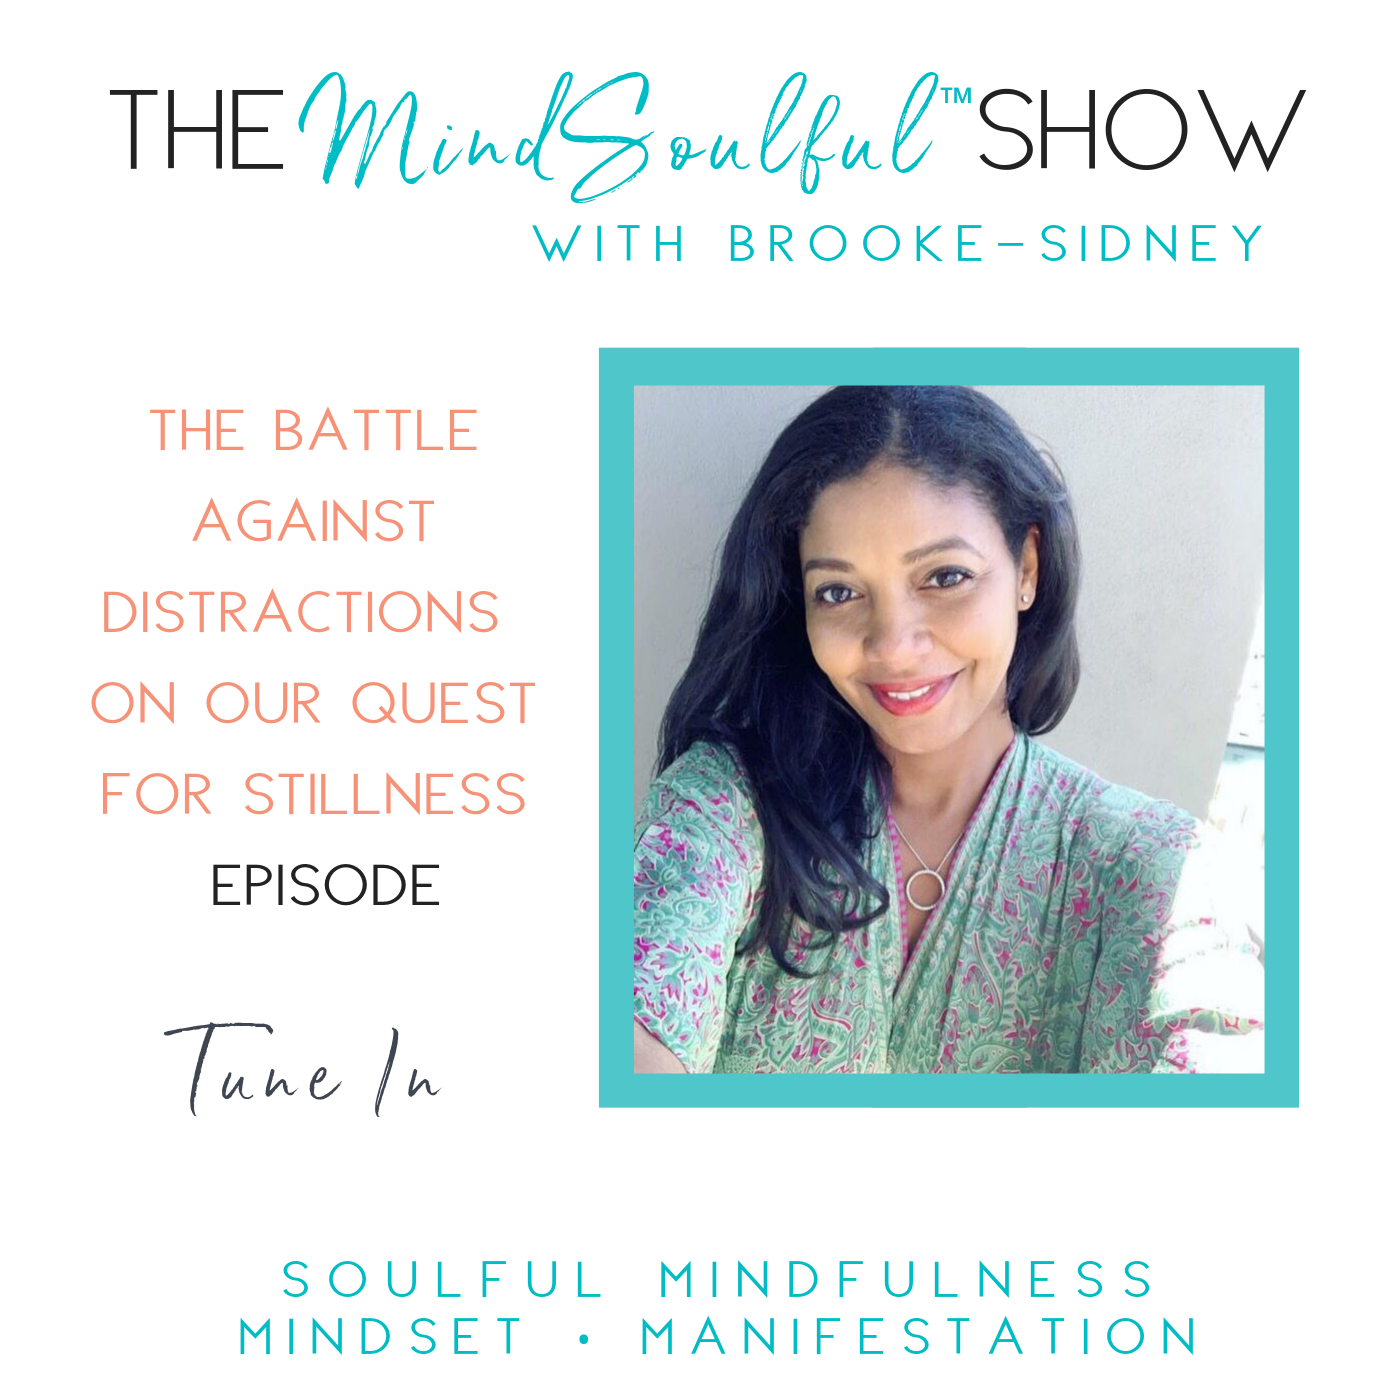 THE MINDSOULFUL SHOW - THE BATTLE AGAINST DISTRACTIONS  ON OUR QUEST FOR STILLNESS Episode.png